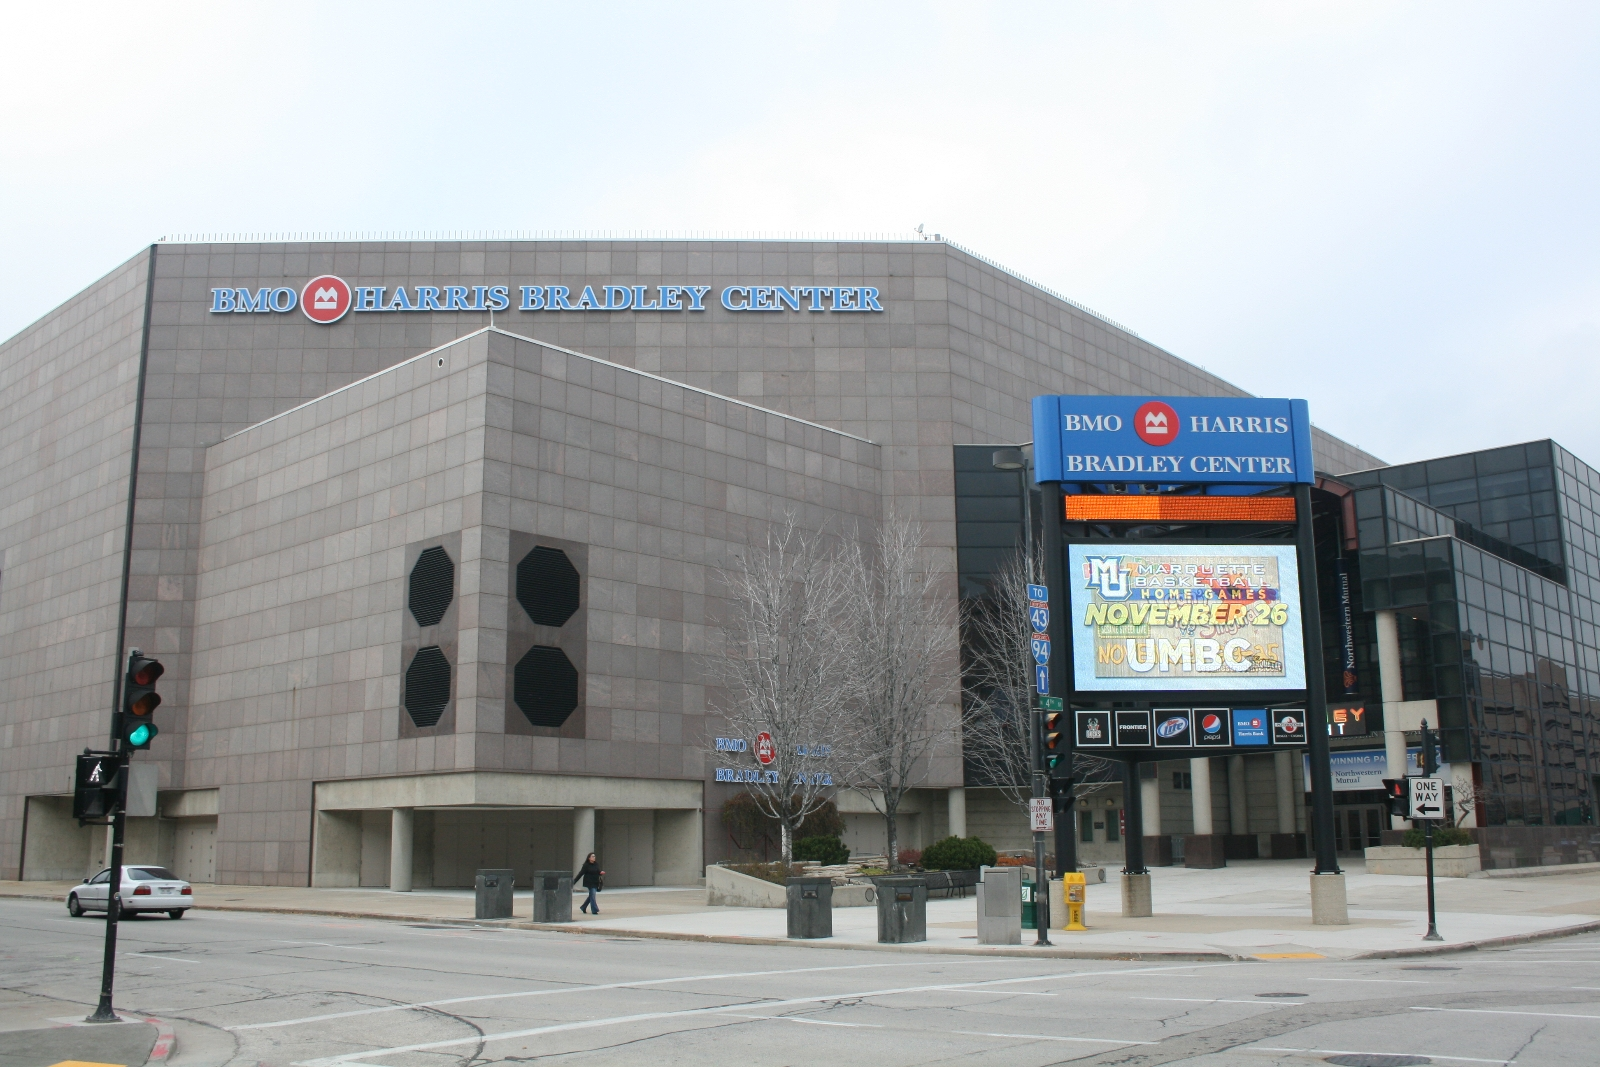 TRAFFIC ALERT – Bradley Center Roof Demolition to Close N. Vel R. Phillips Av. and W. State St. Sunday, January 13, 2019 from 6:00 am to 11:00 am